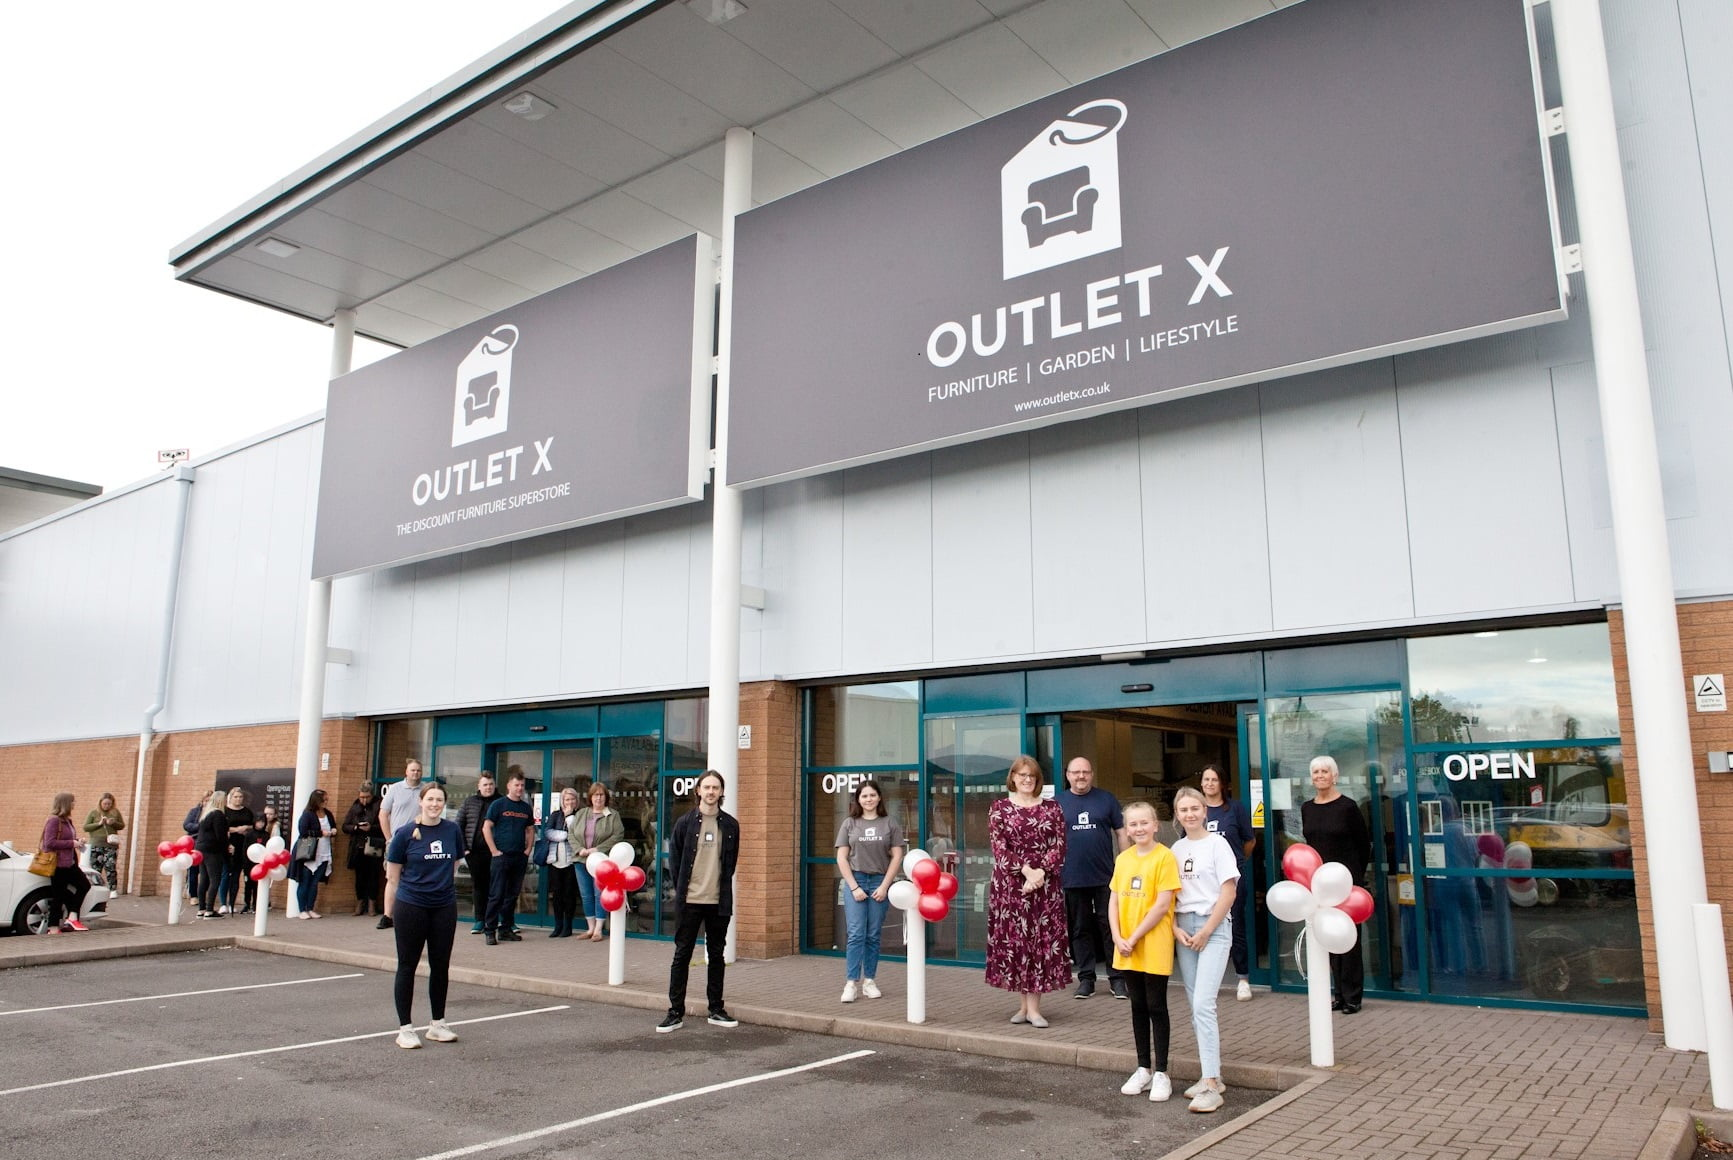 Liz-Lowe-Head-of-Estates-at-Morris-Property-centre-in-floral-dress-with-the-Outlet-X-team-and-shoppers